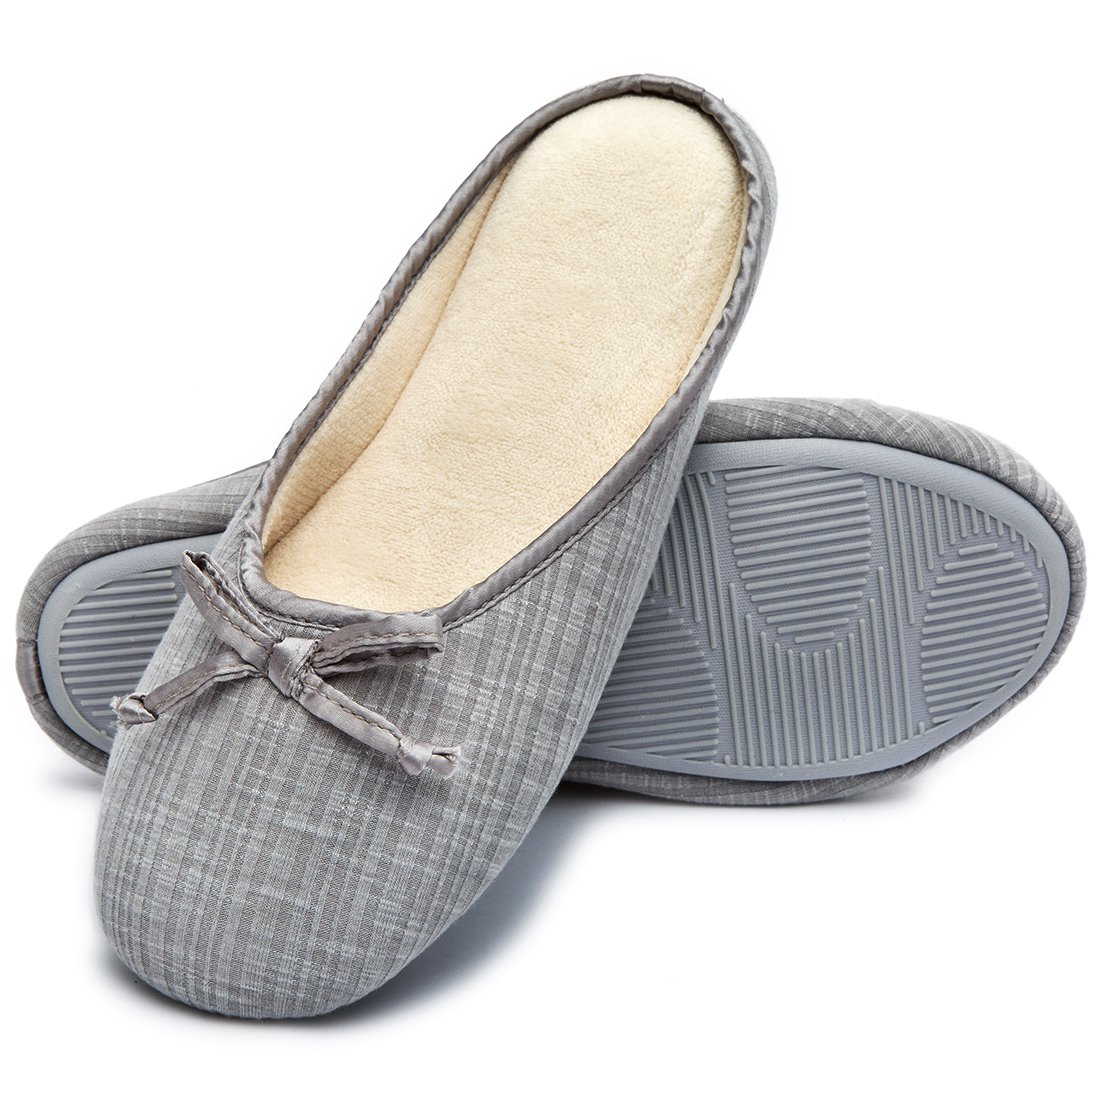 Cozy Niche Women's Closed Toe Knitted Stripe Memory Foam House Slippers With Cute Bow, Perfect For Spring and Summer (9-10 B(M) US, Gray)